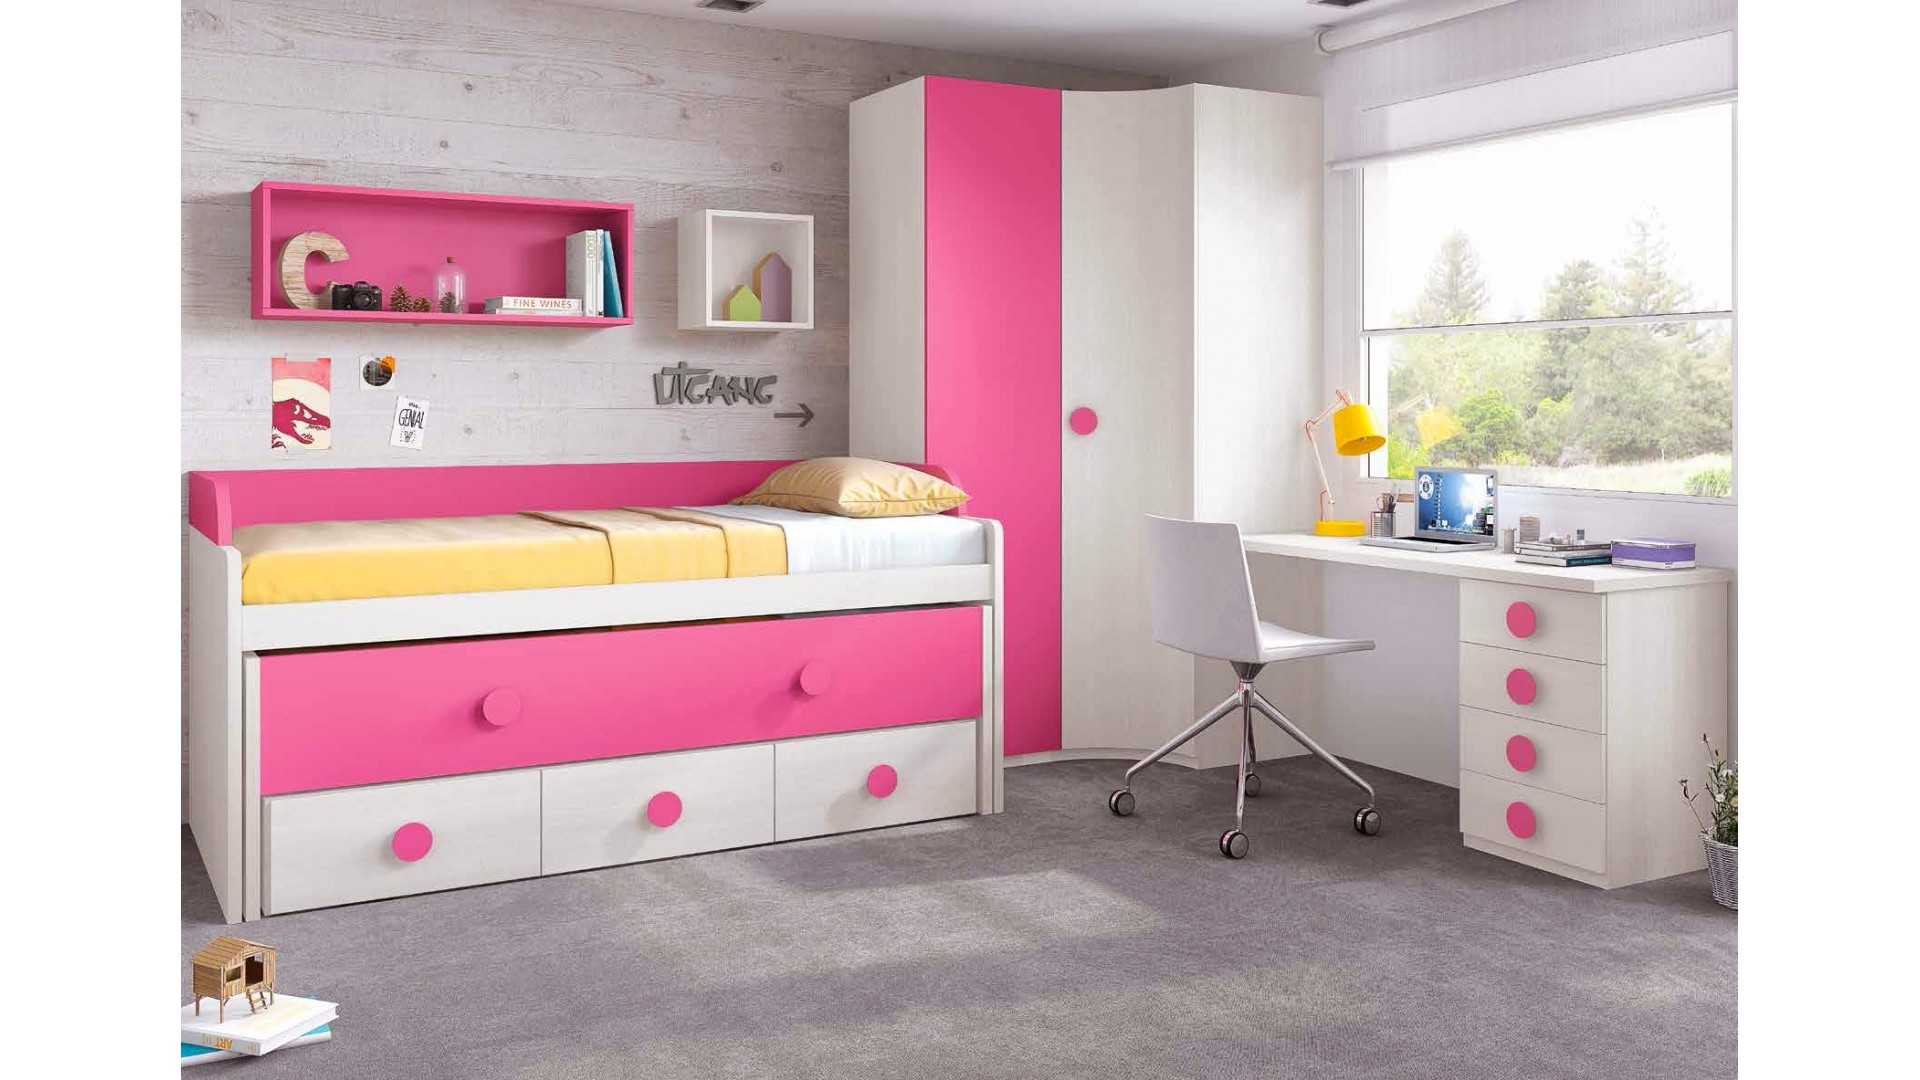 chambre de fille fun avec lit sur l v gigogne glicerio so nuit. Black Bedroom Furniture Sets. Home Design Ideas